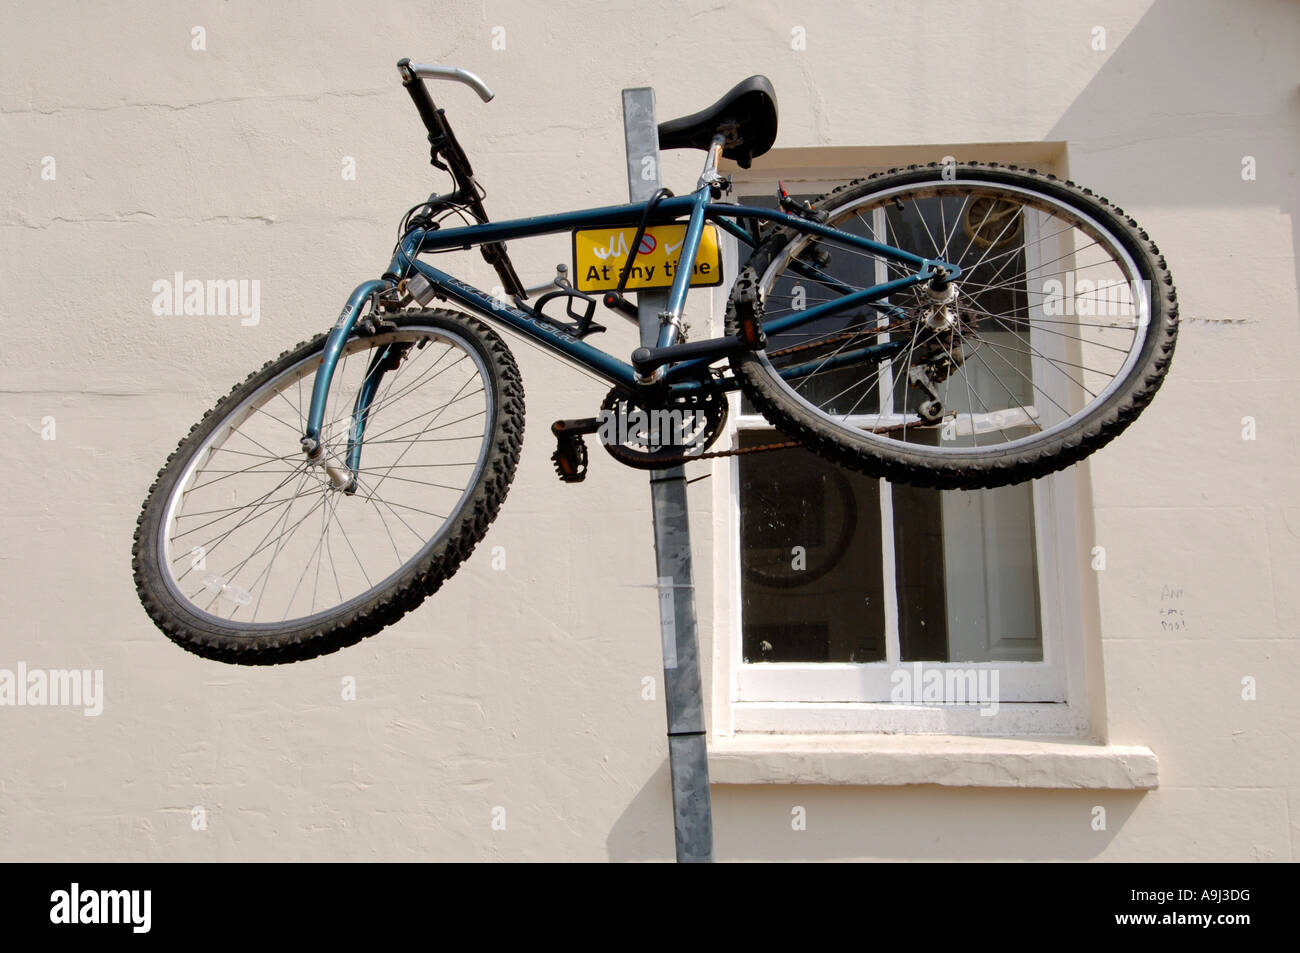 A Raleigh Mountain bike is secured on top of a parking restriction pole on a city road. - Stock Image